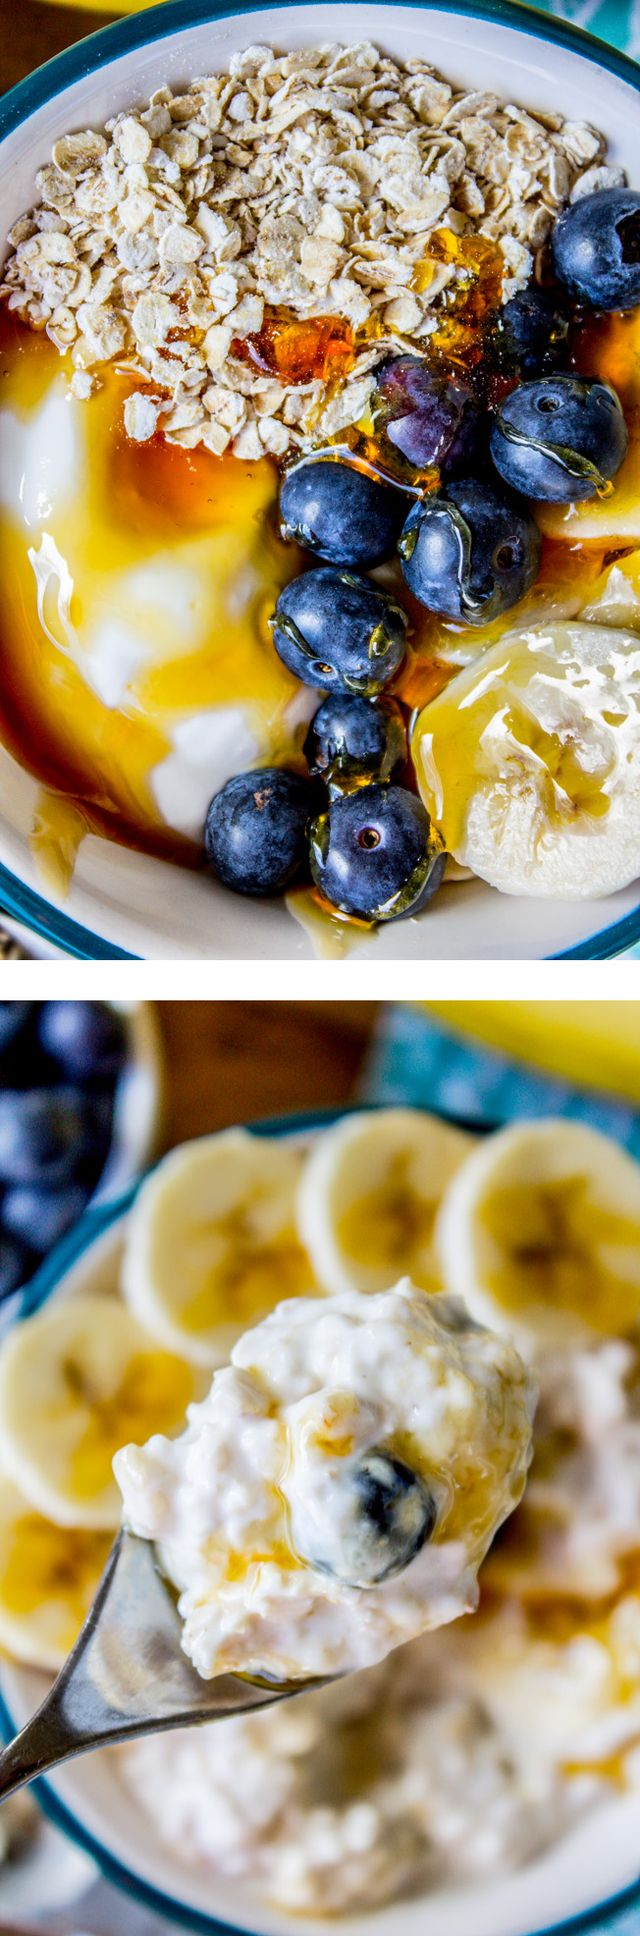 banana blueberry overnight oats with honey thefoodcharlatan com oats with yogurt food on hebbar s kitchen recipes oats id=62257